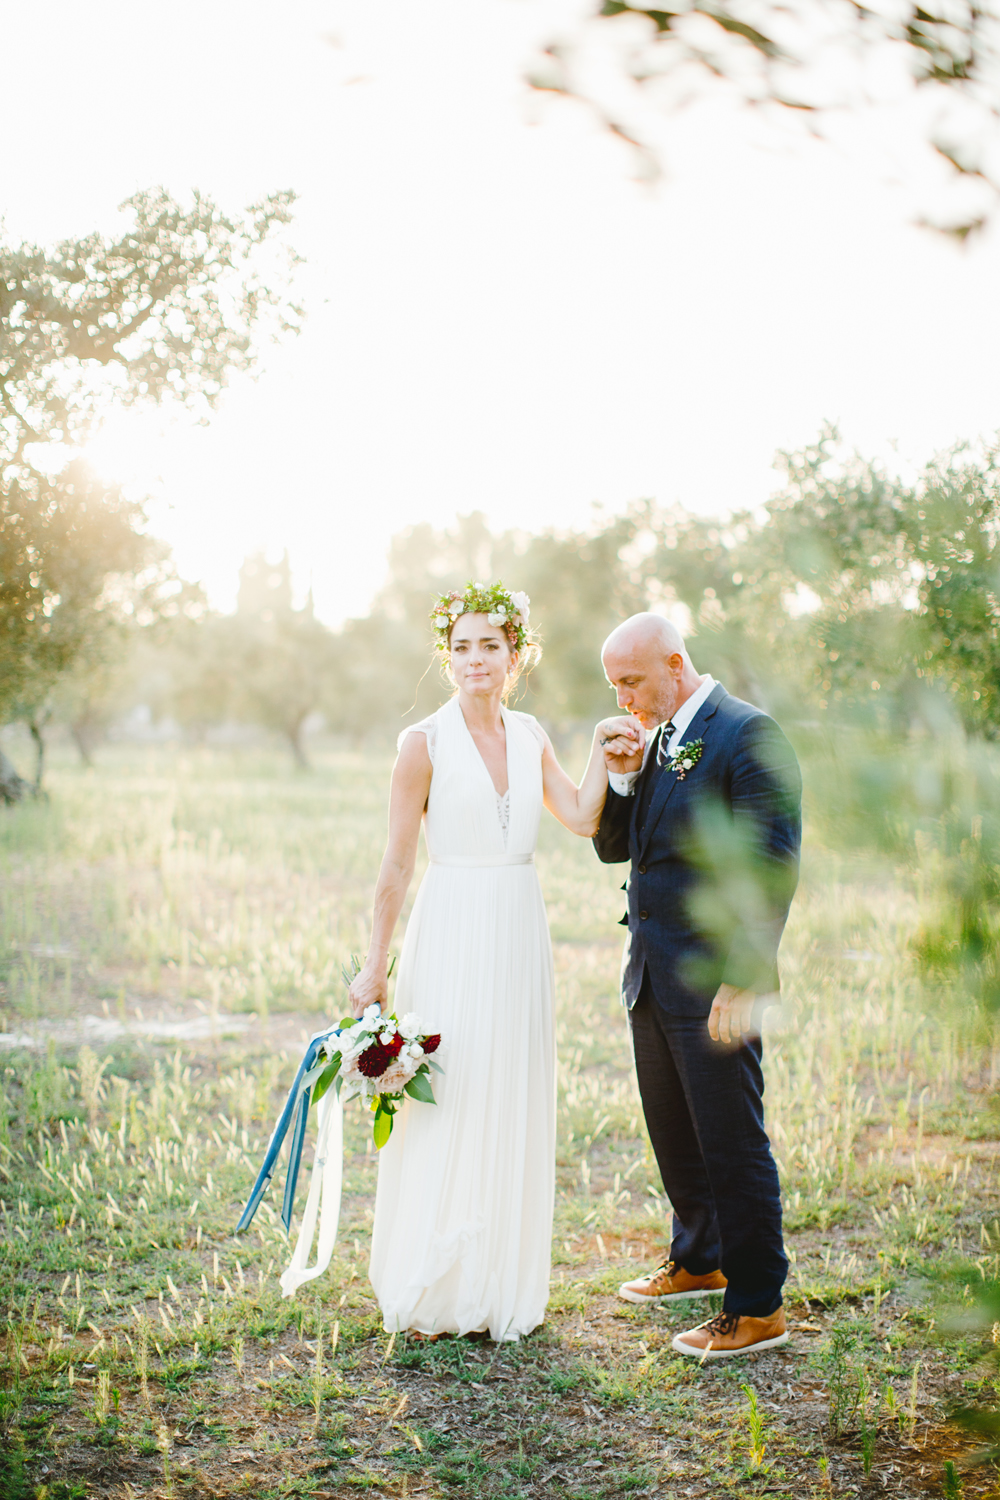 Les Amis Photo_Destination Wedding Photographer_Wedding in Puglia_BARMIC_15_450.jpg